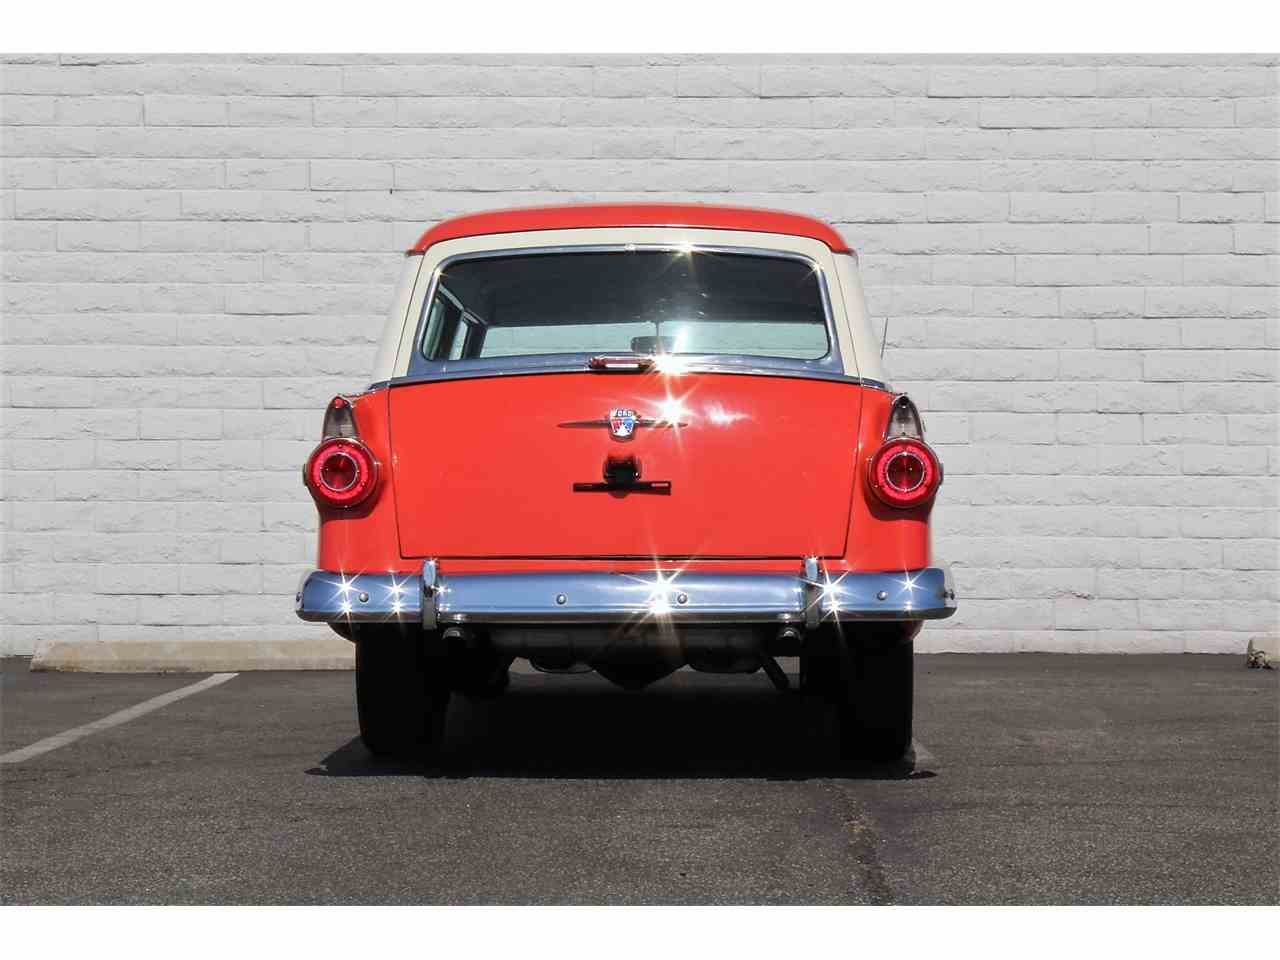 Large Picture of '56 Ford Parklane located in Carson California - $39,500.00 - LSR6